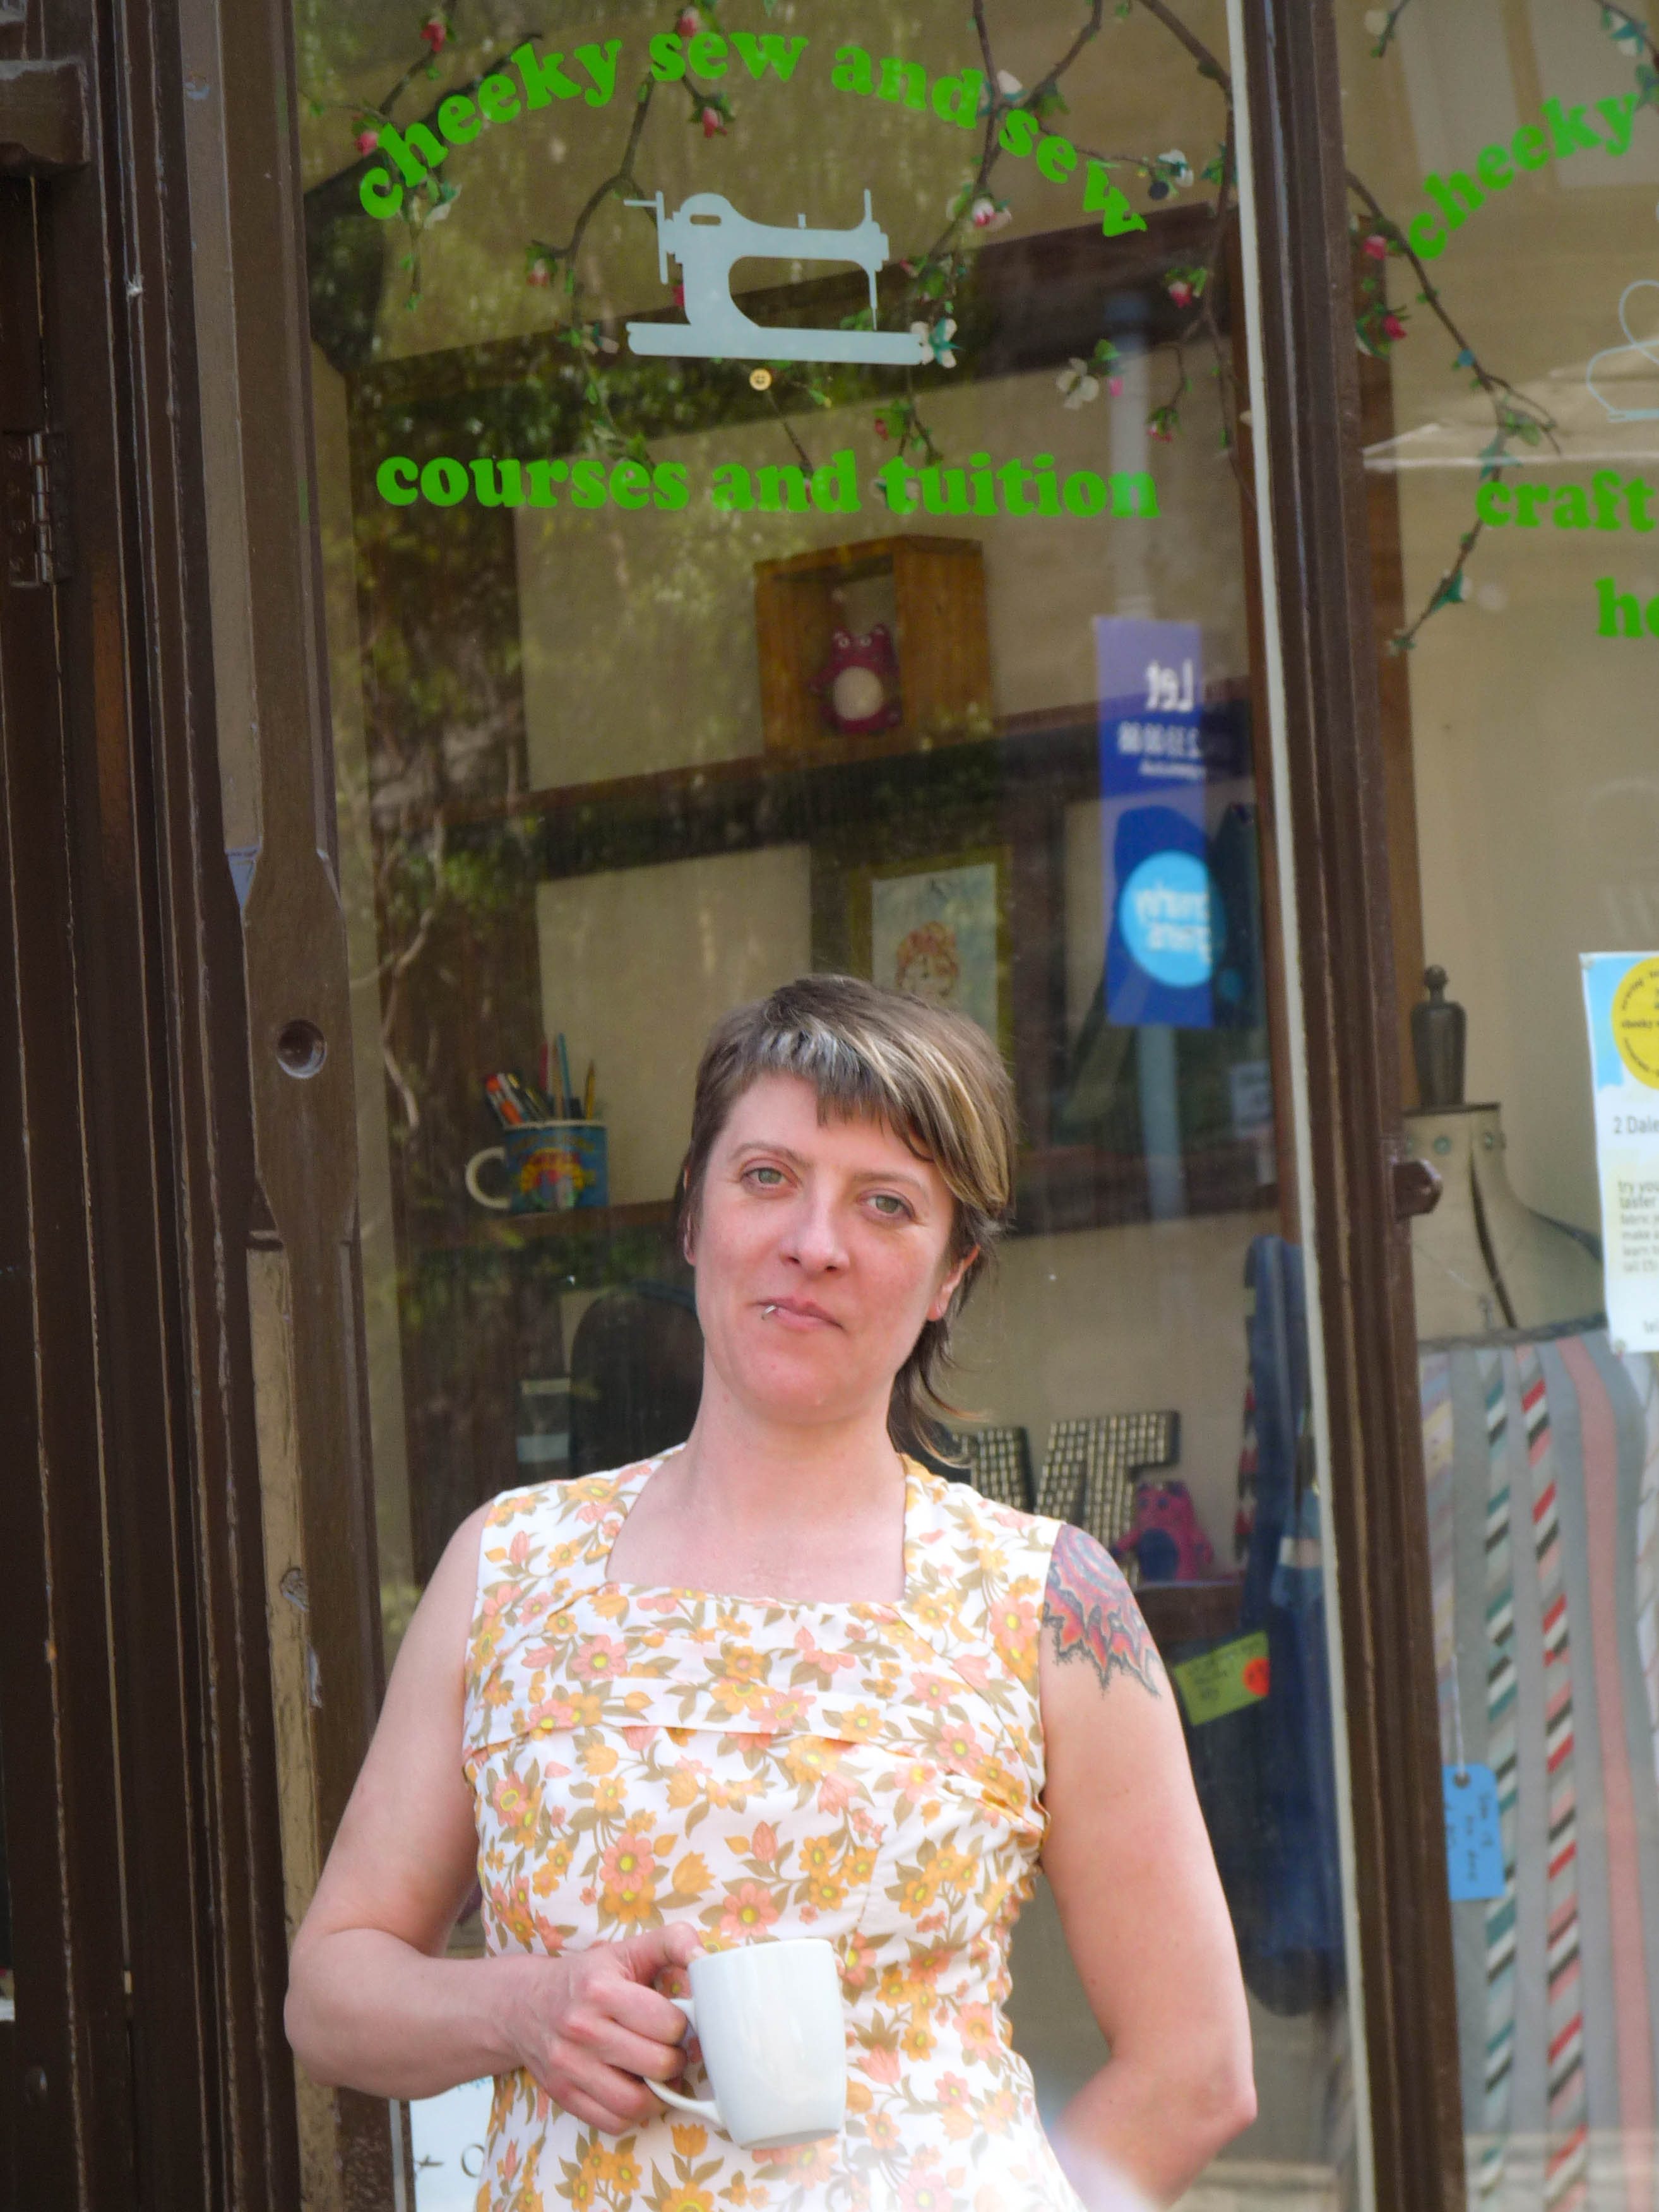 Tansy Dyer outside cheeky sew and sew workshop